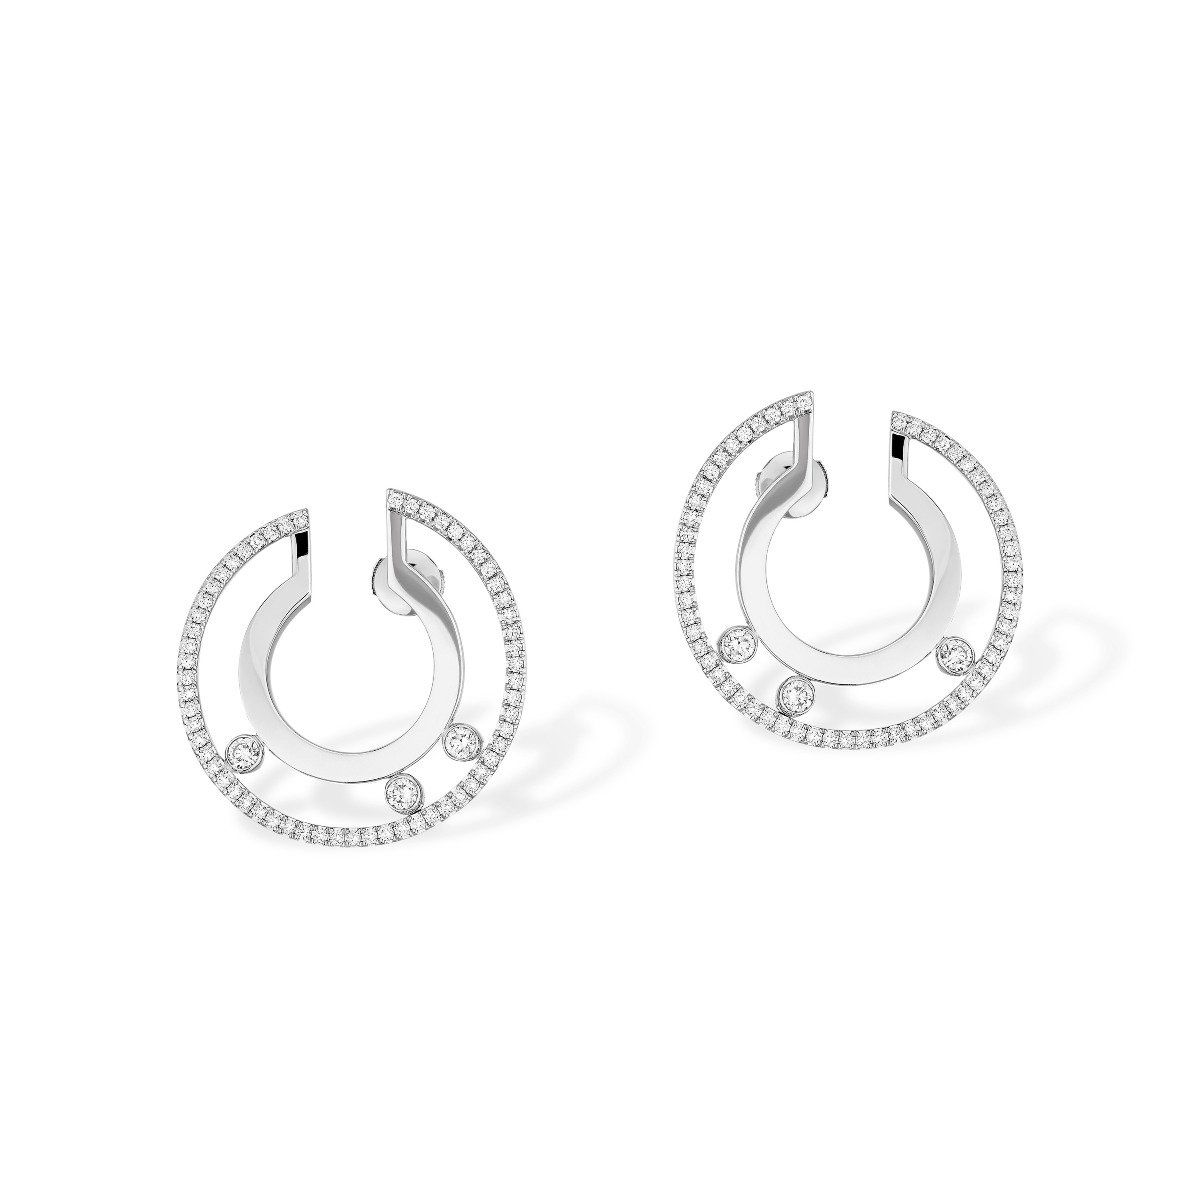 Move Romane Small Hoop Earrings - white gold